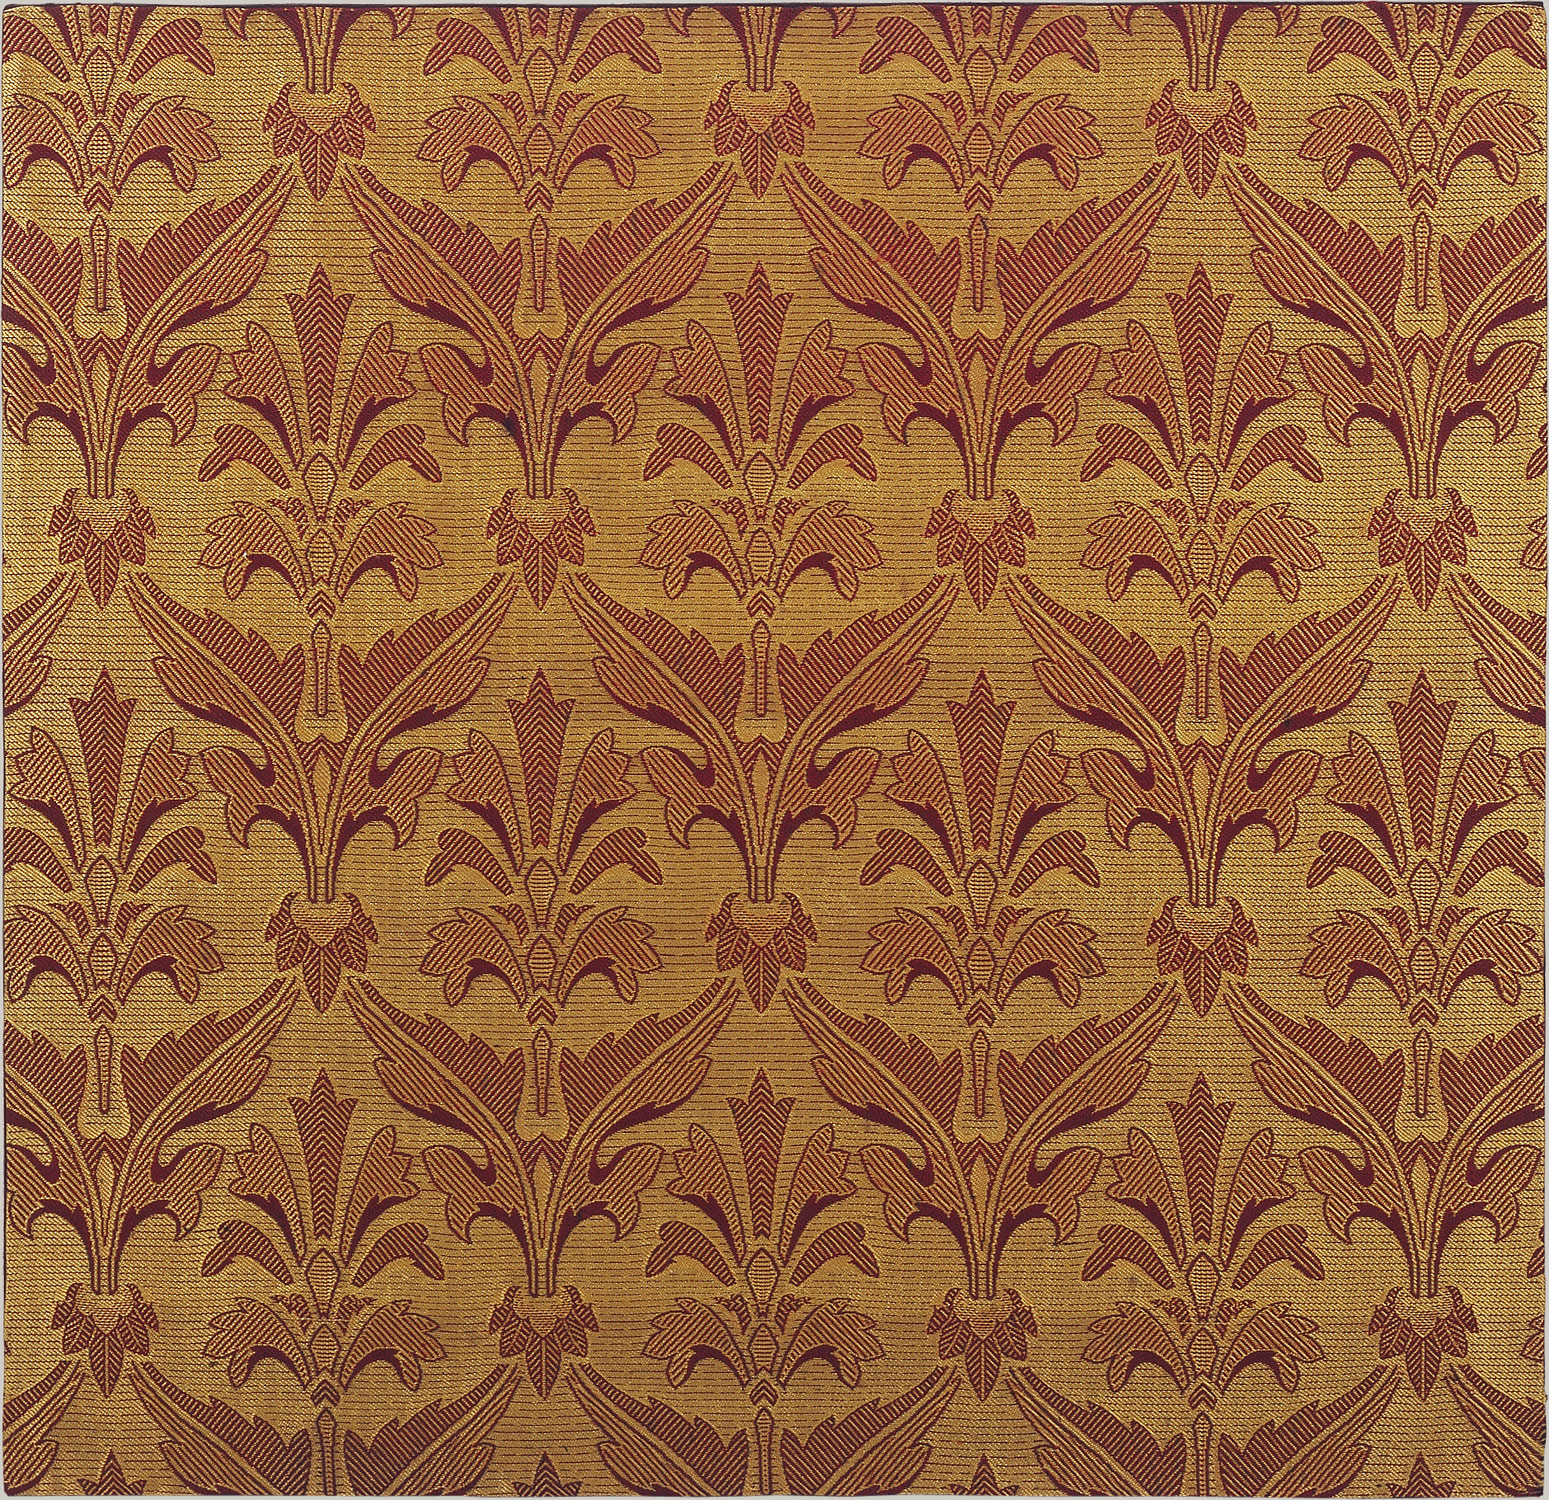 Tudor Style Wallpaper Nineteenth Century European Textile Production Essay